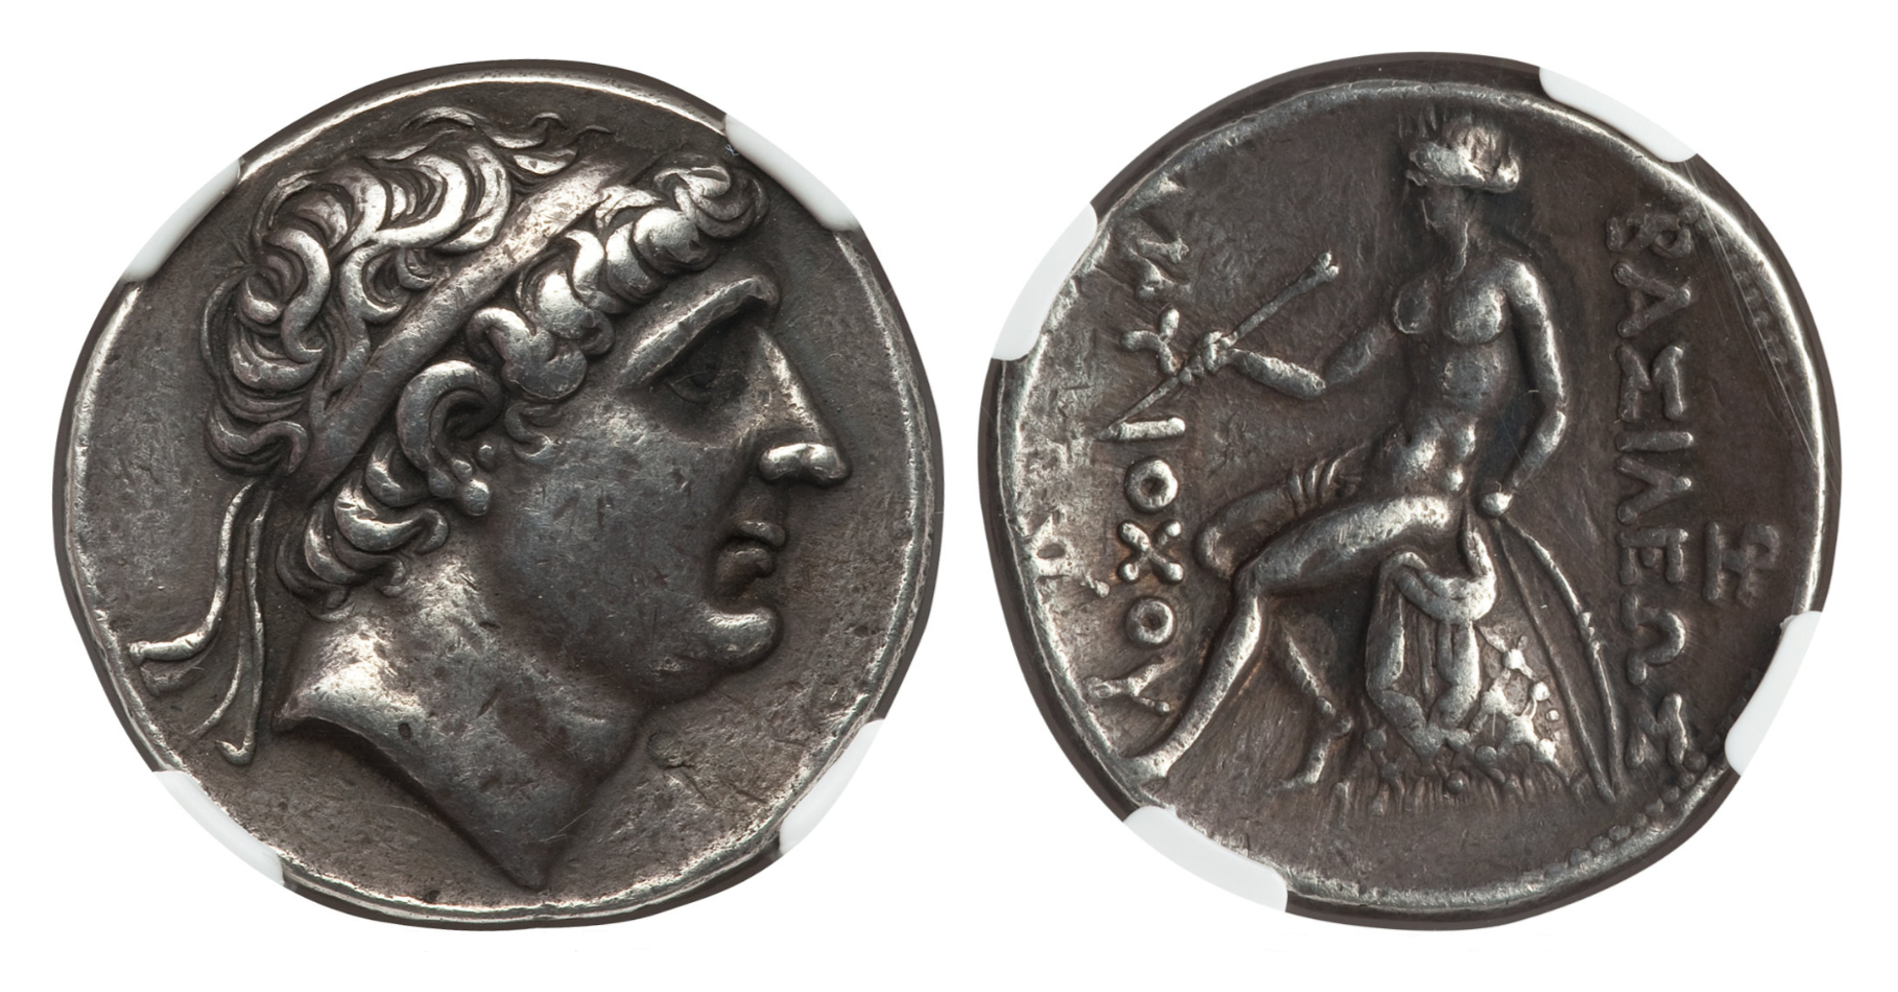 /Files/Images/Coinsite/CoinDB/Large-Heritage-Antiochus-Tetradrachm-4.png